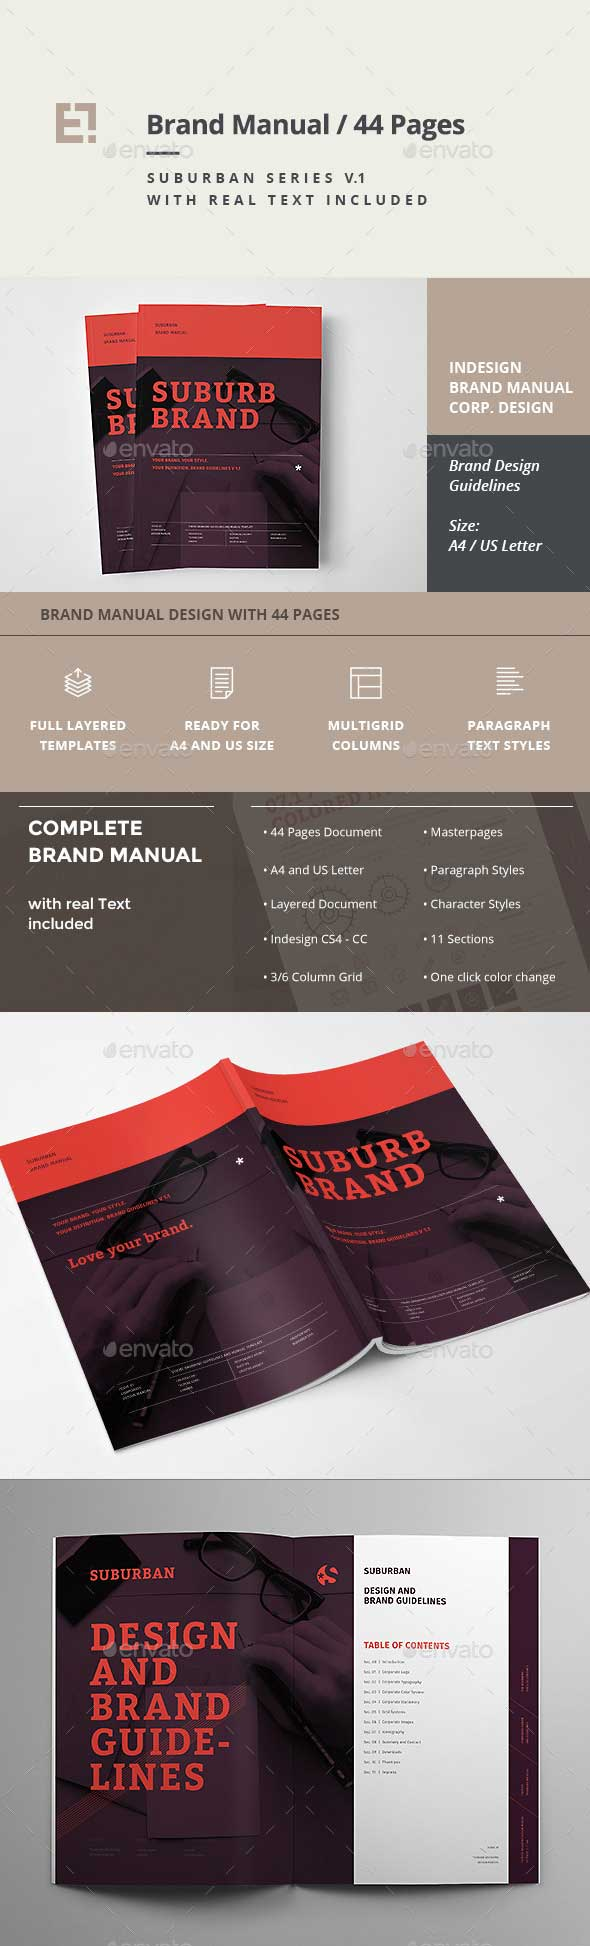 Brand Guideline InDesign Template